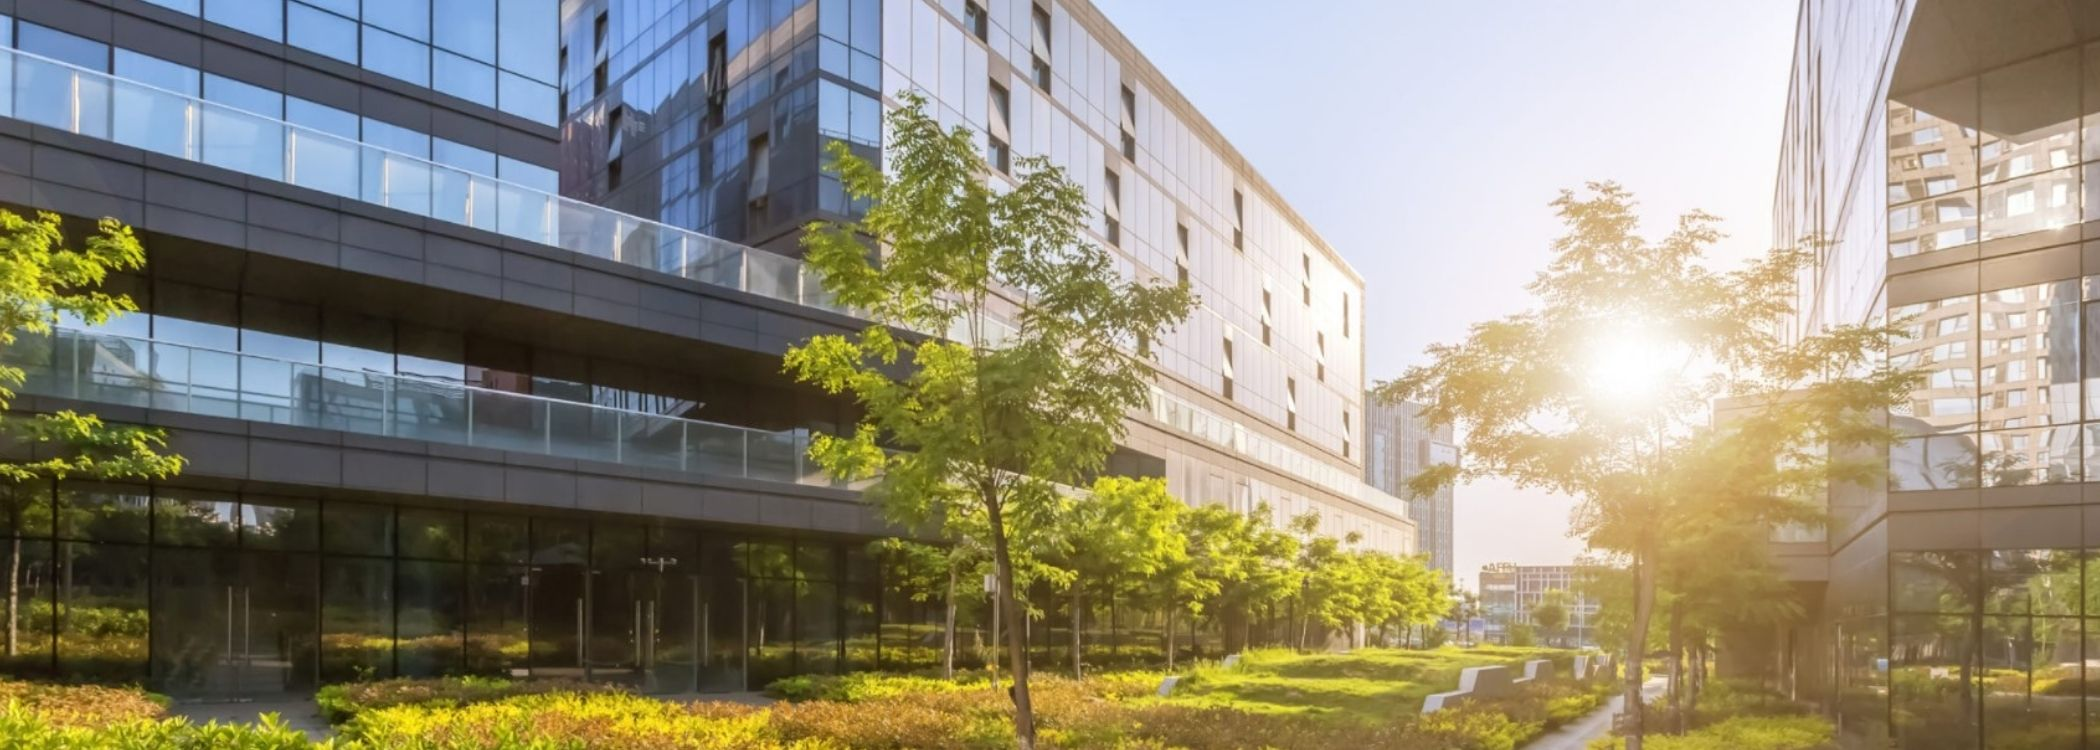 complete landscaping services for commercial buildings